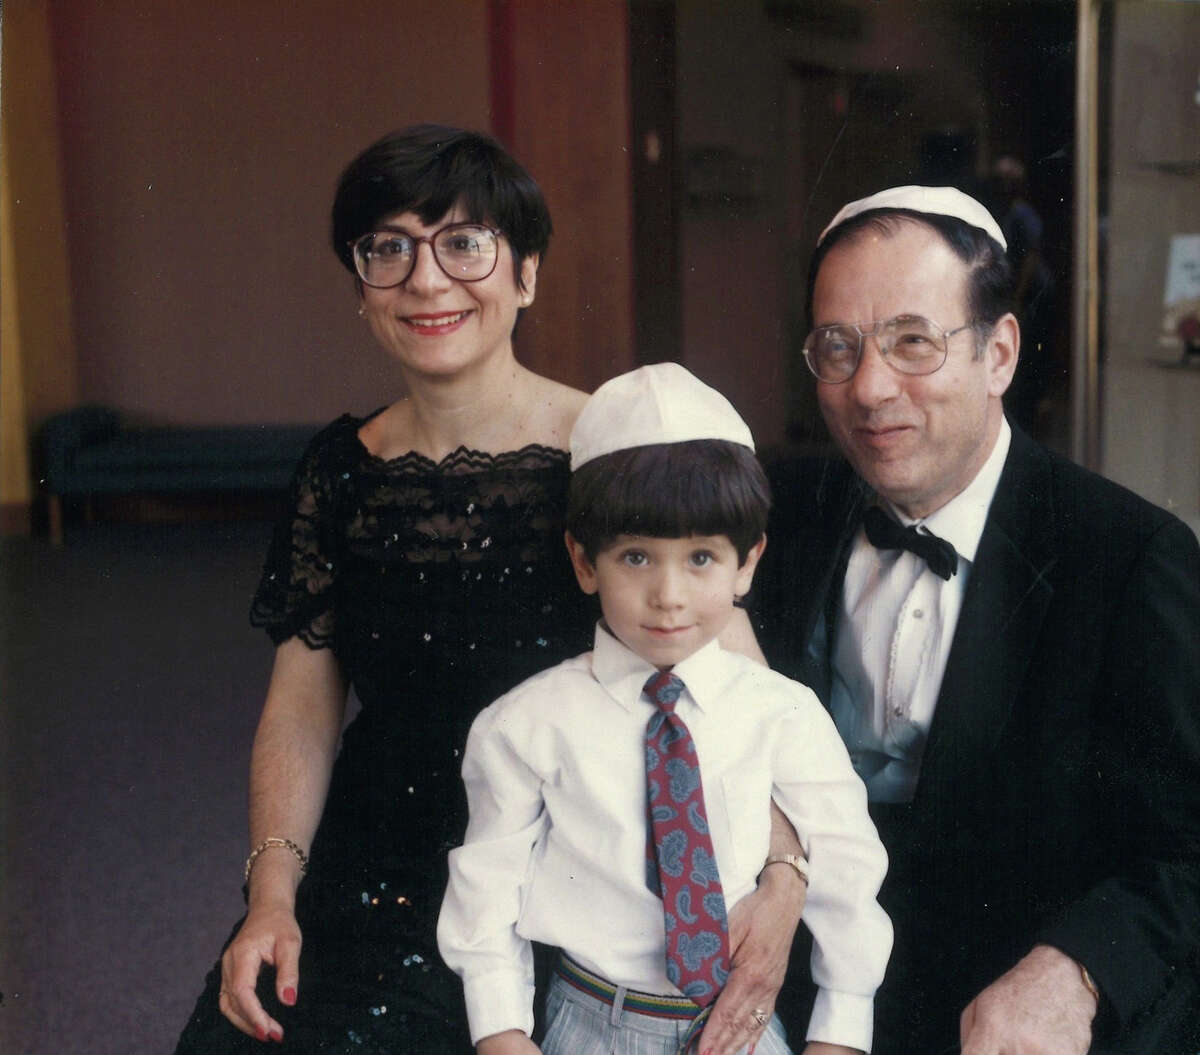 Eric Berger attended a wedding in 1992 in St. Louis with his parents, Susie and Carlos Berger. At the time, Eric was 5 years old; Susie was 45 and Carlos was 58.